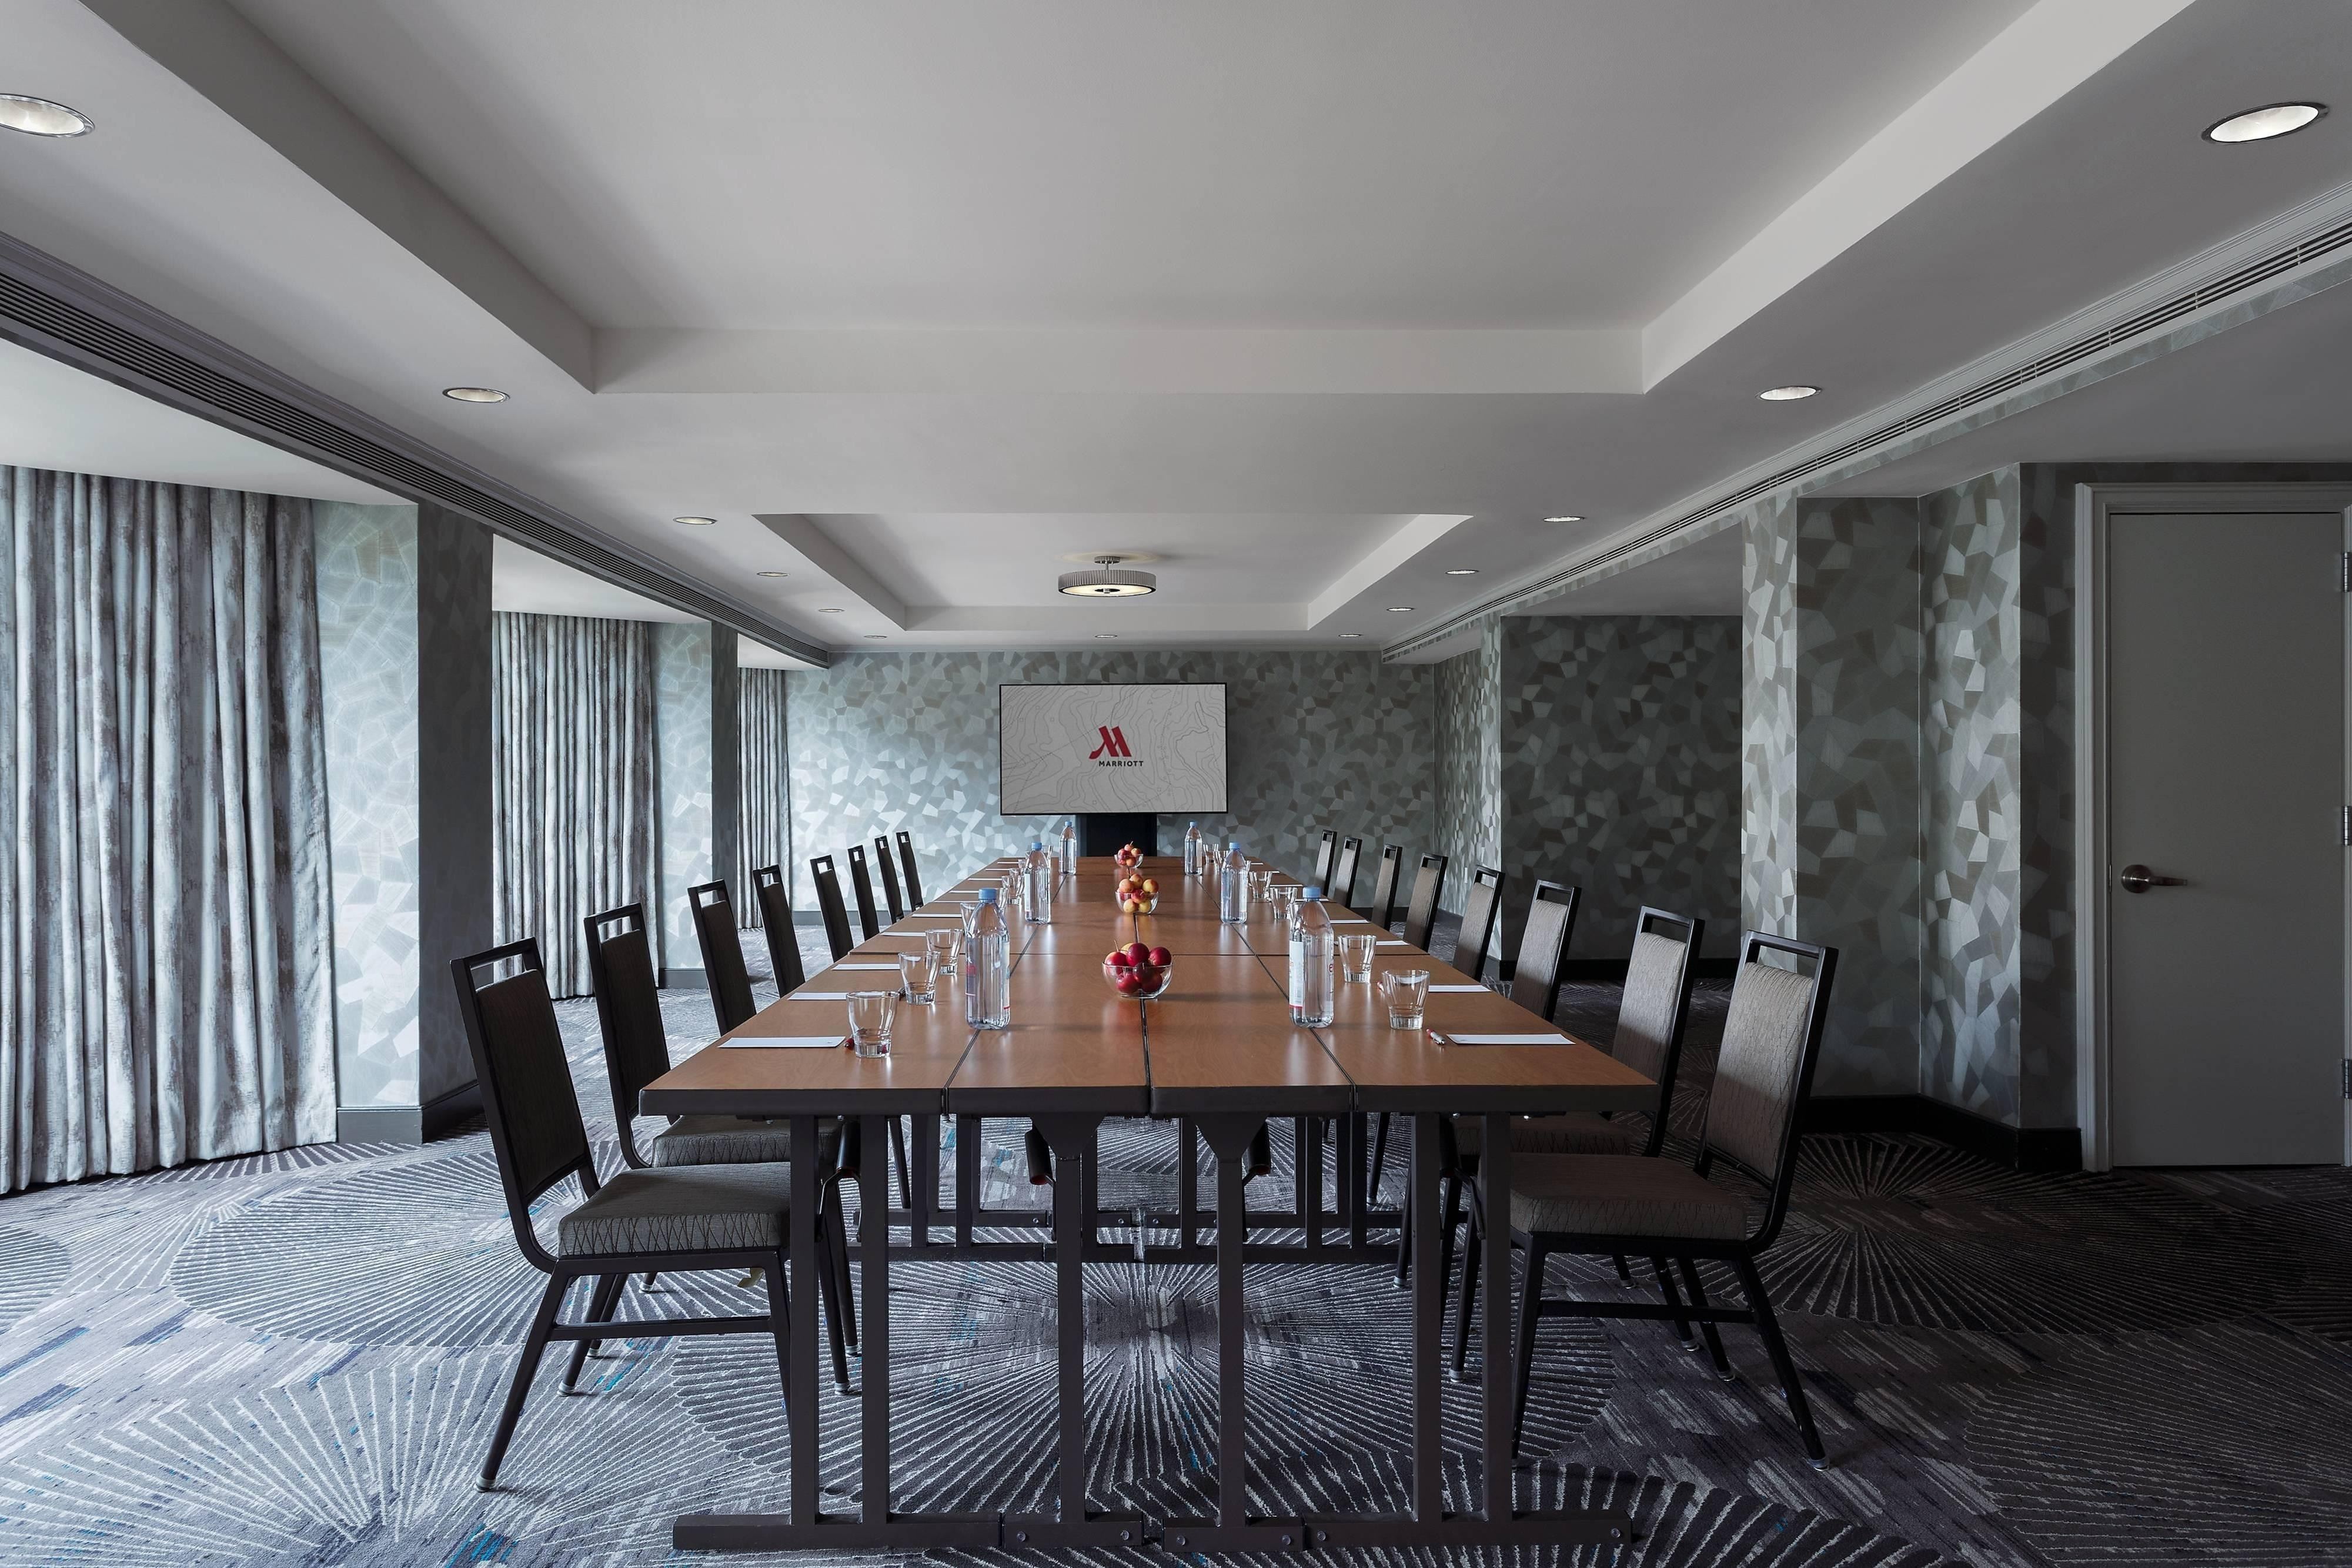 Alexandria Meeting Room - Conference Setup